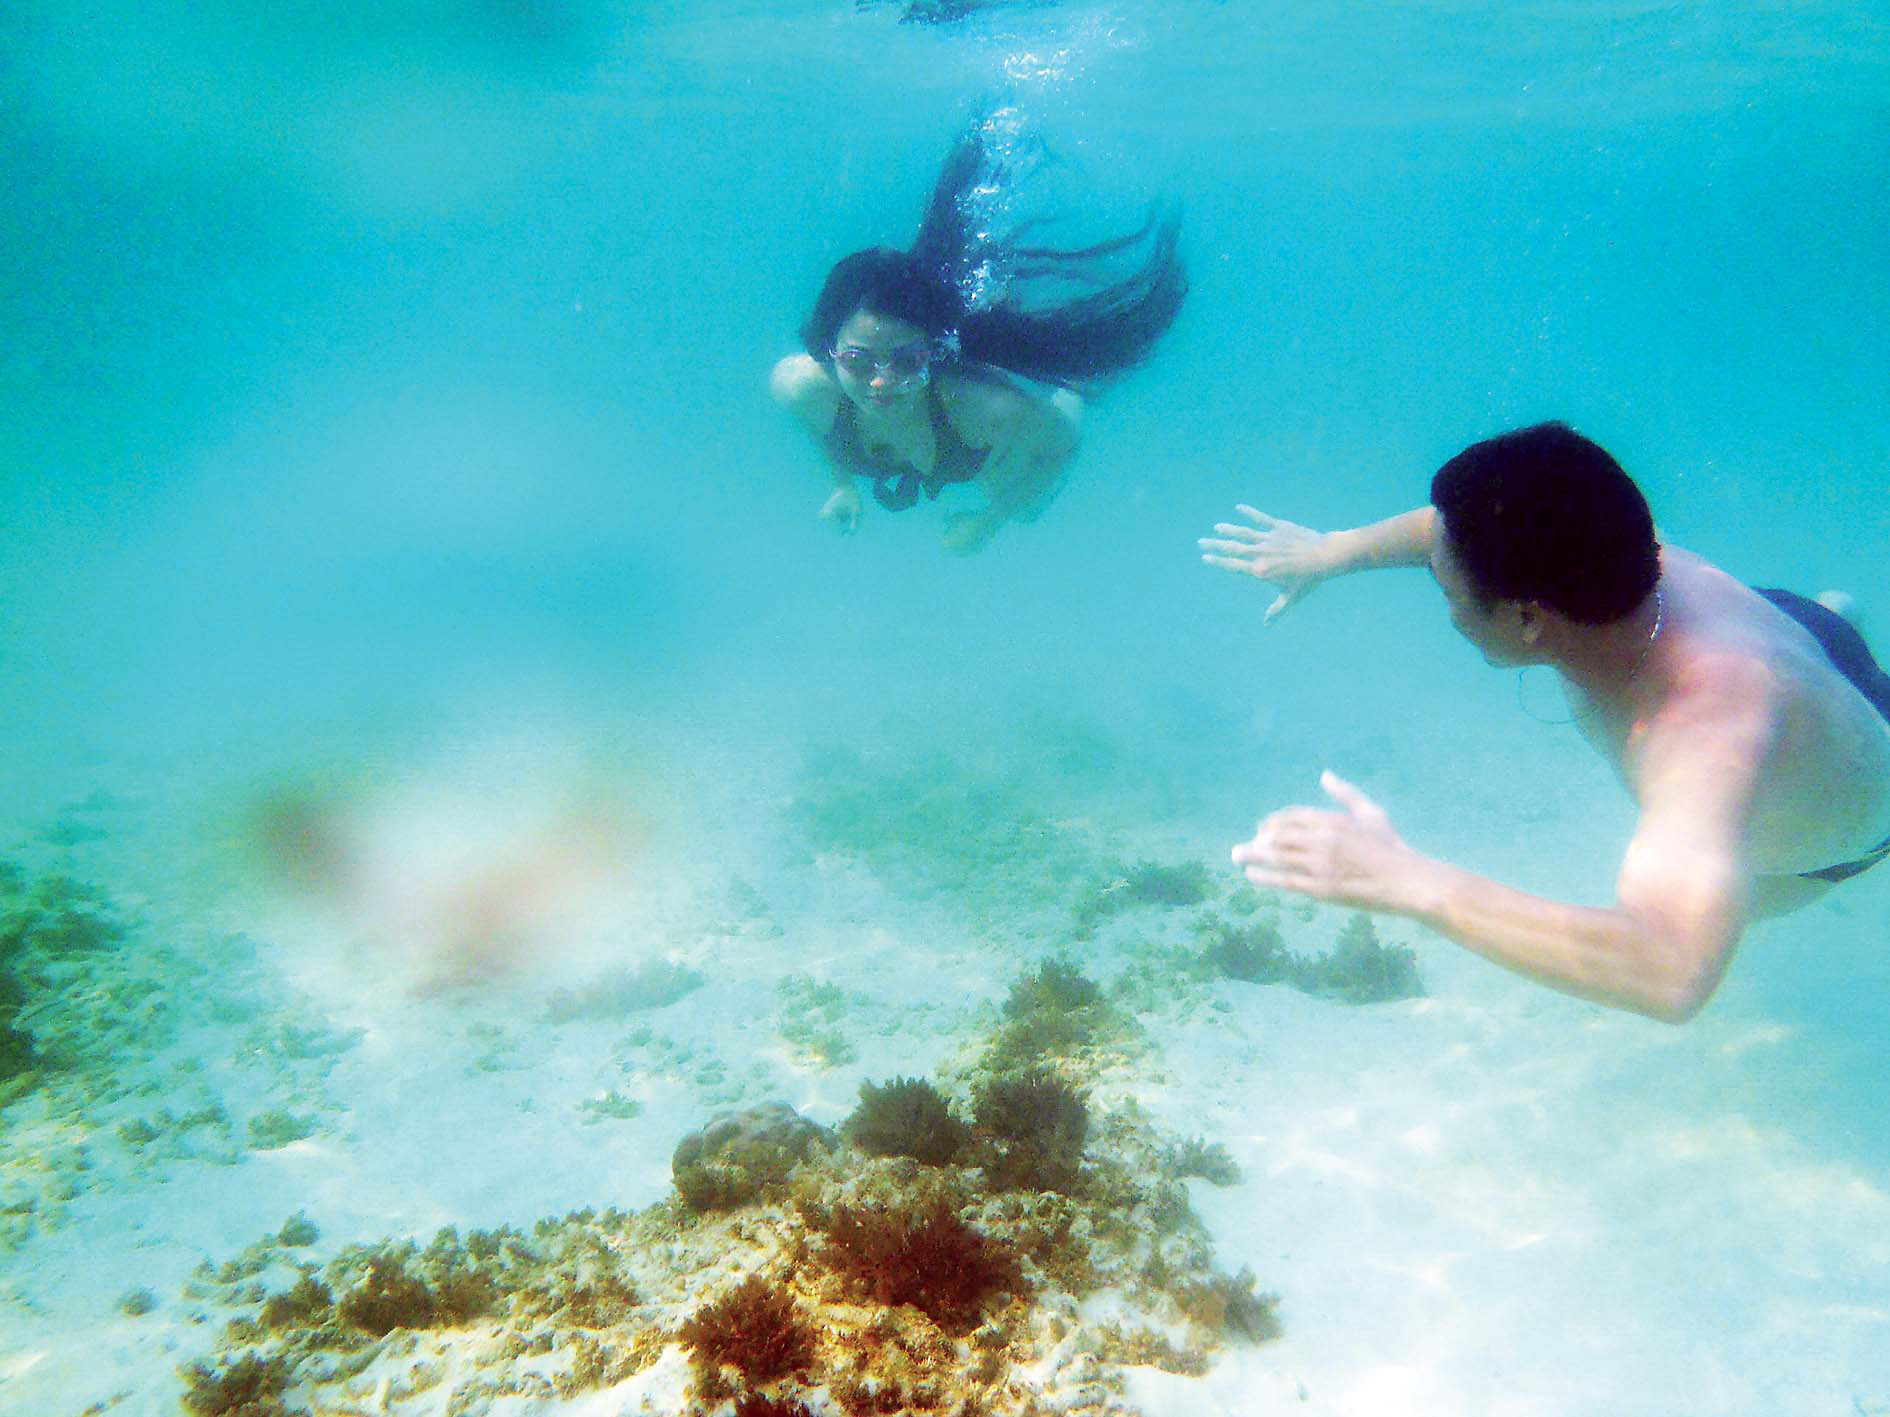 Tourists enjoy coral reef diving at Quyet Tien beach near Tho Chau archipelago off Kien Giang Province, Vietnam.